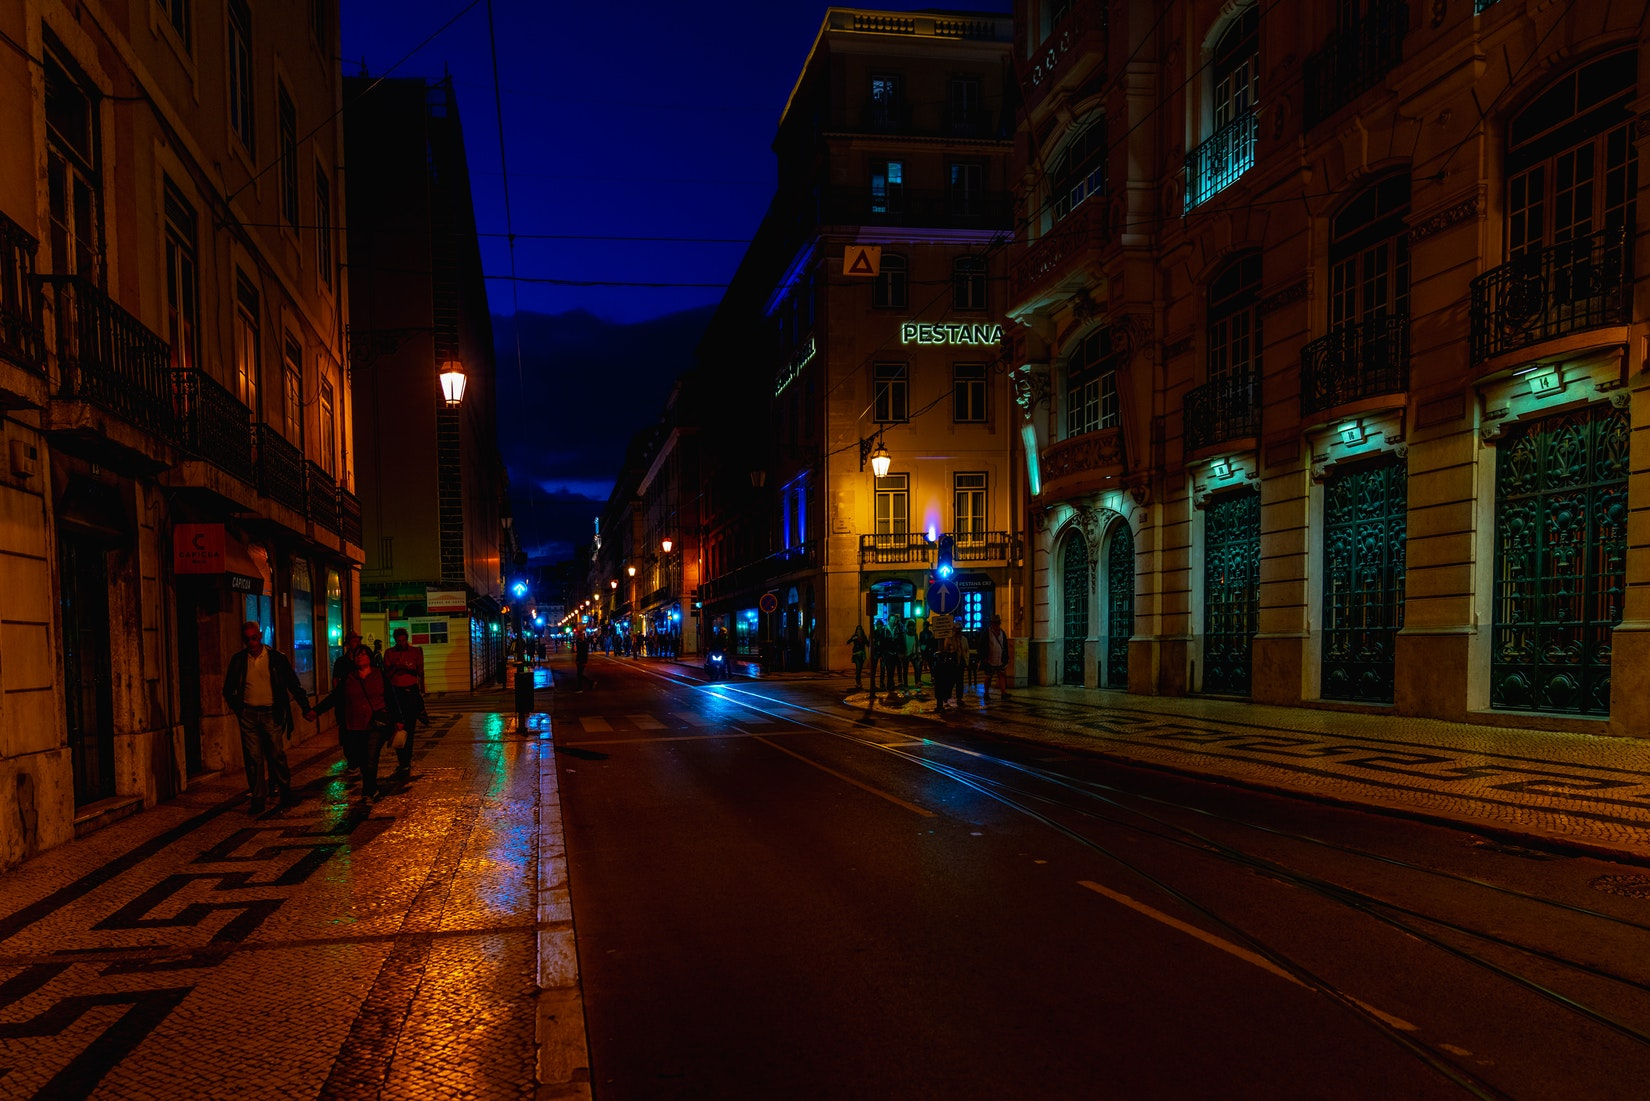 Lights in a night scene on streets of Baixa district in Lisbon, Portugal